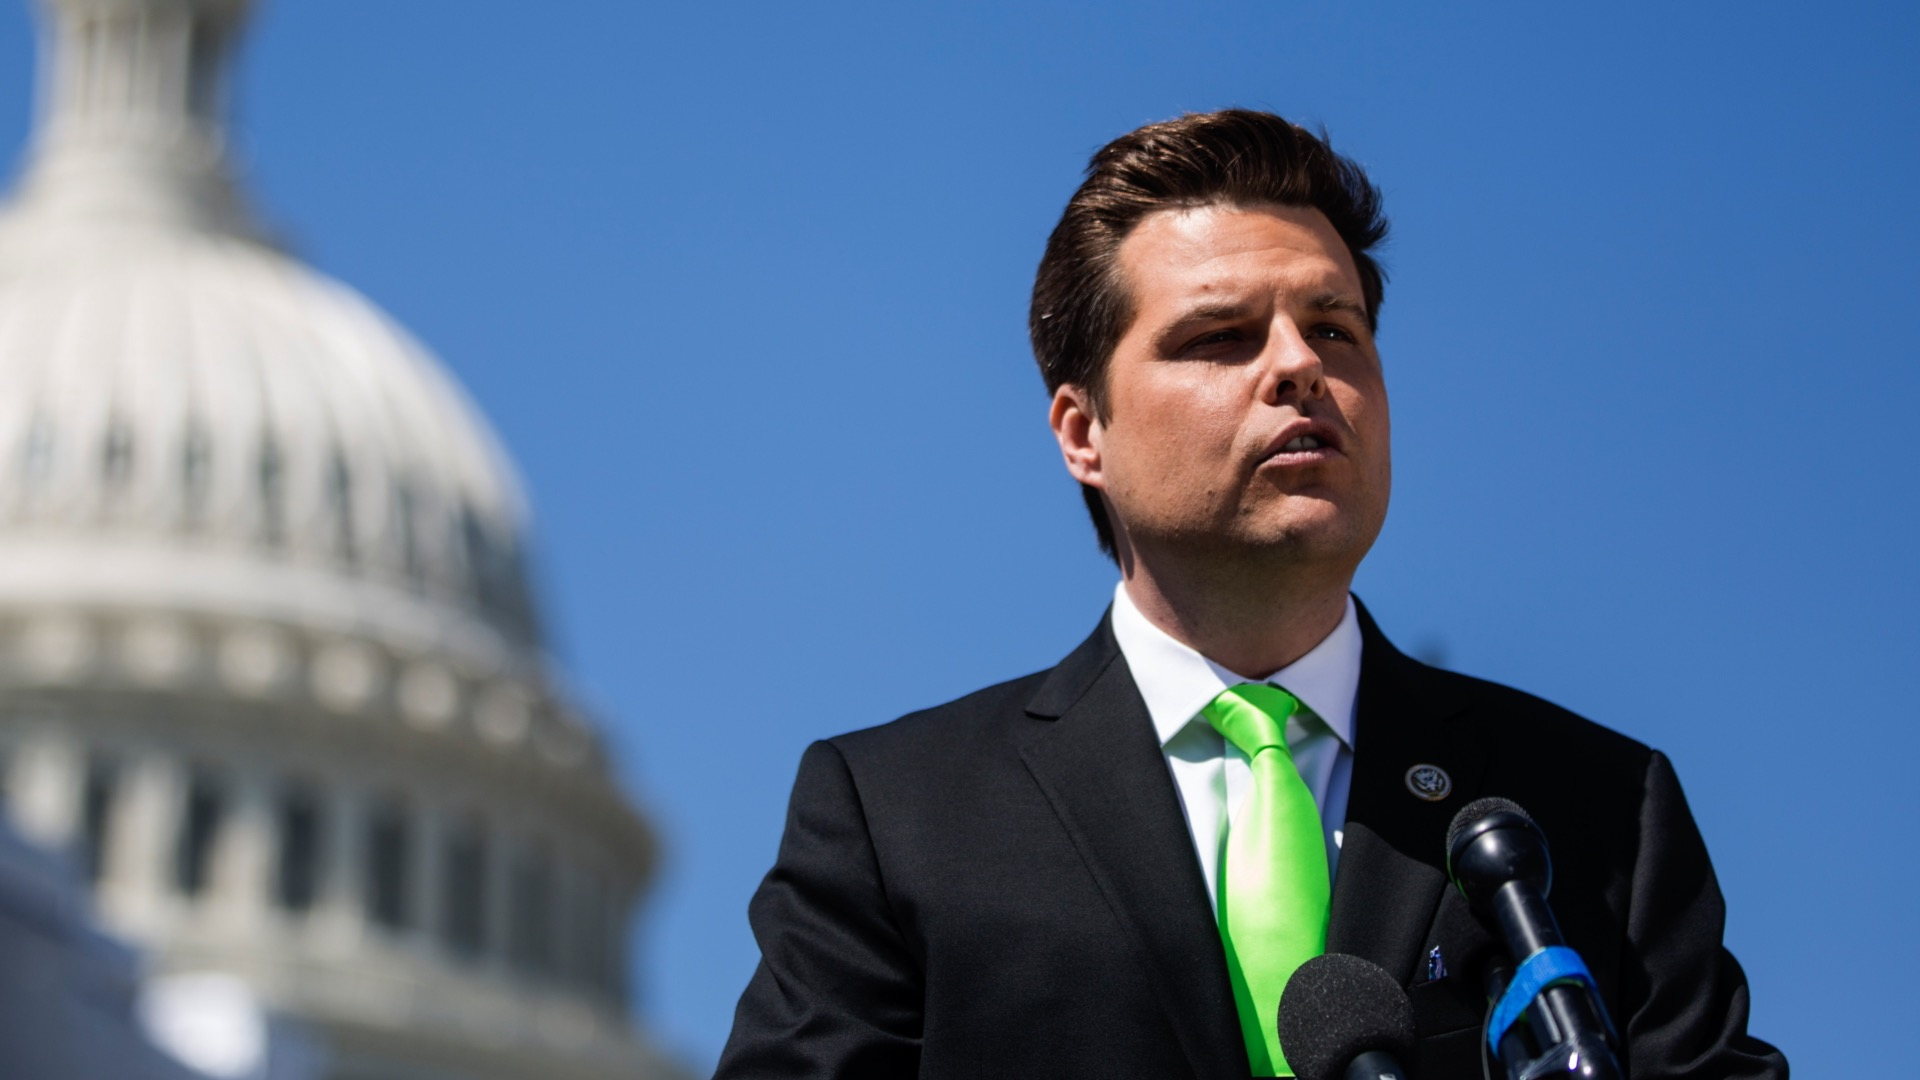 Gaetz Criticizes Schiff for Removing Him From 'Unfair' Impeachment Inquiry Hearing